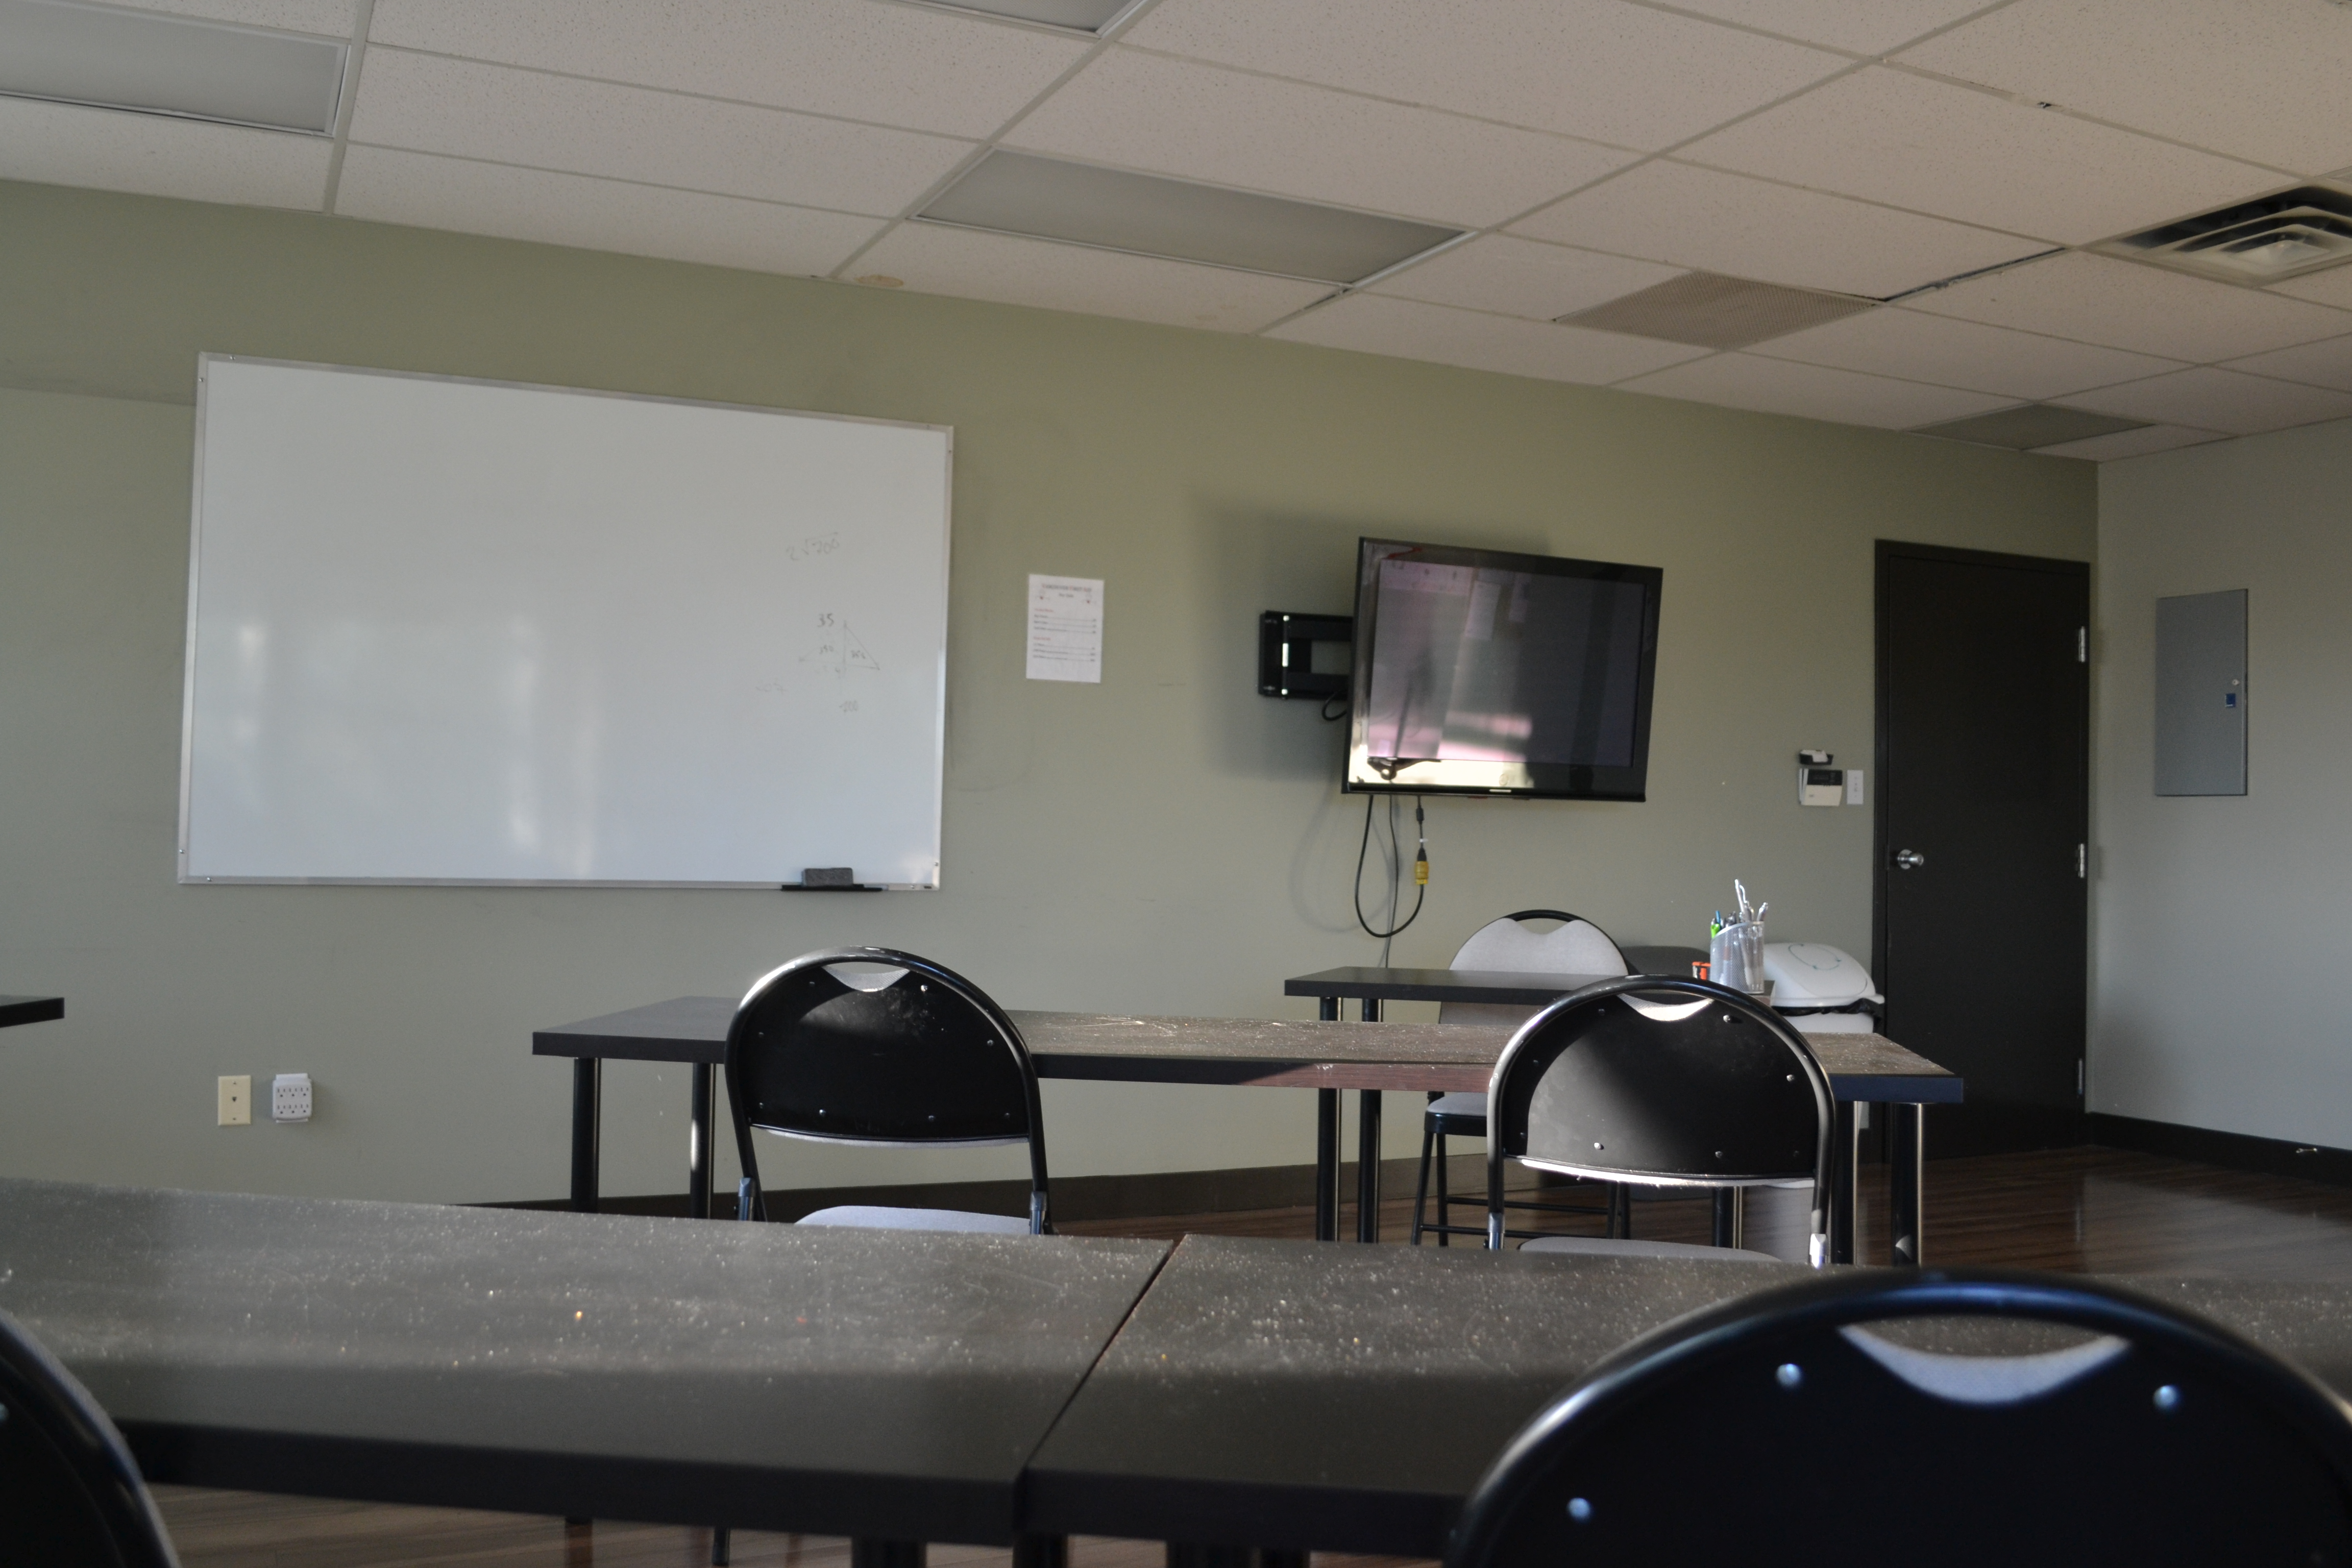 St mark james first aid and cpr certification in edmonton edmonton first aid classroom xflitez Gallery